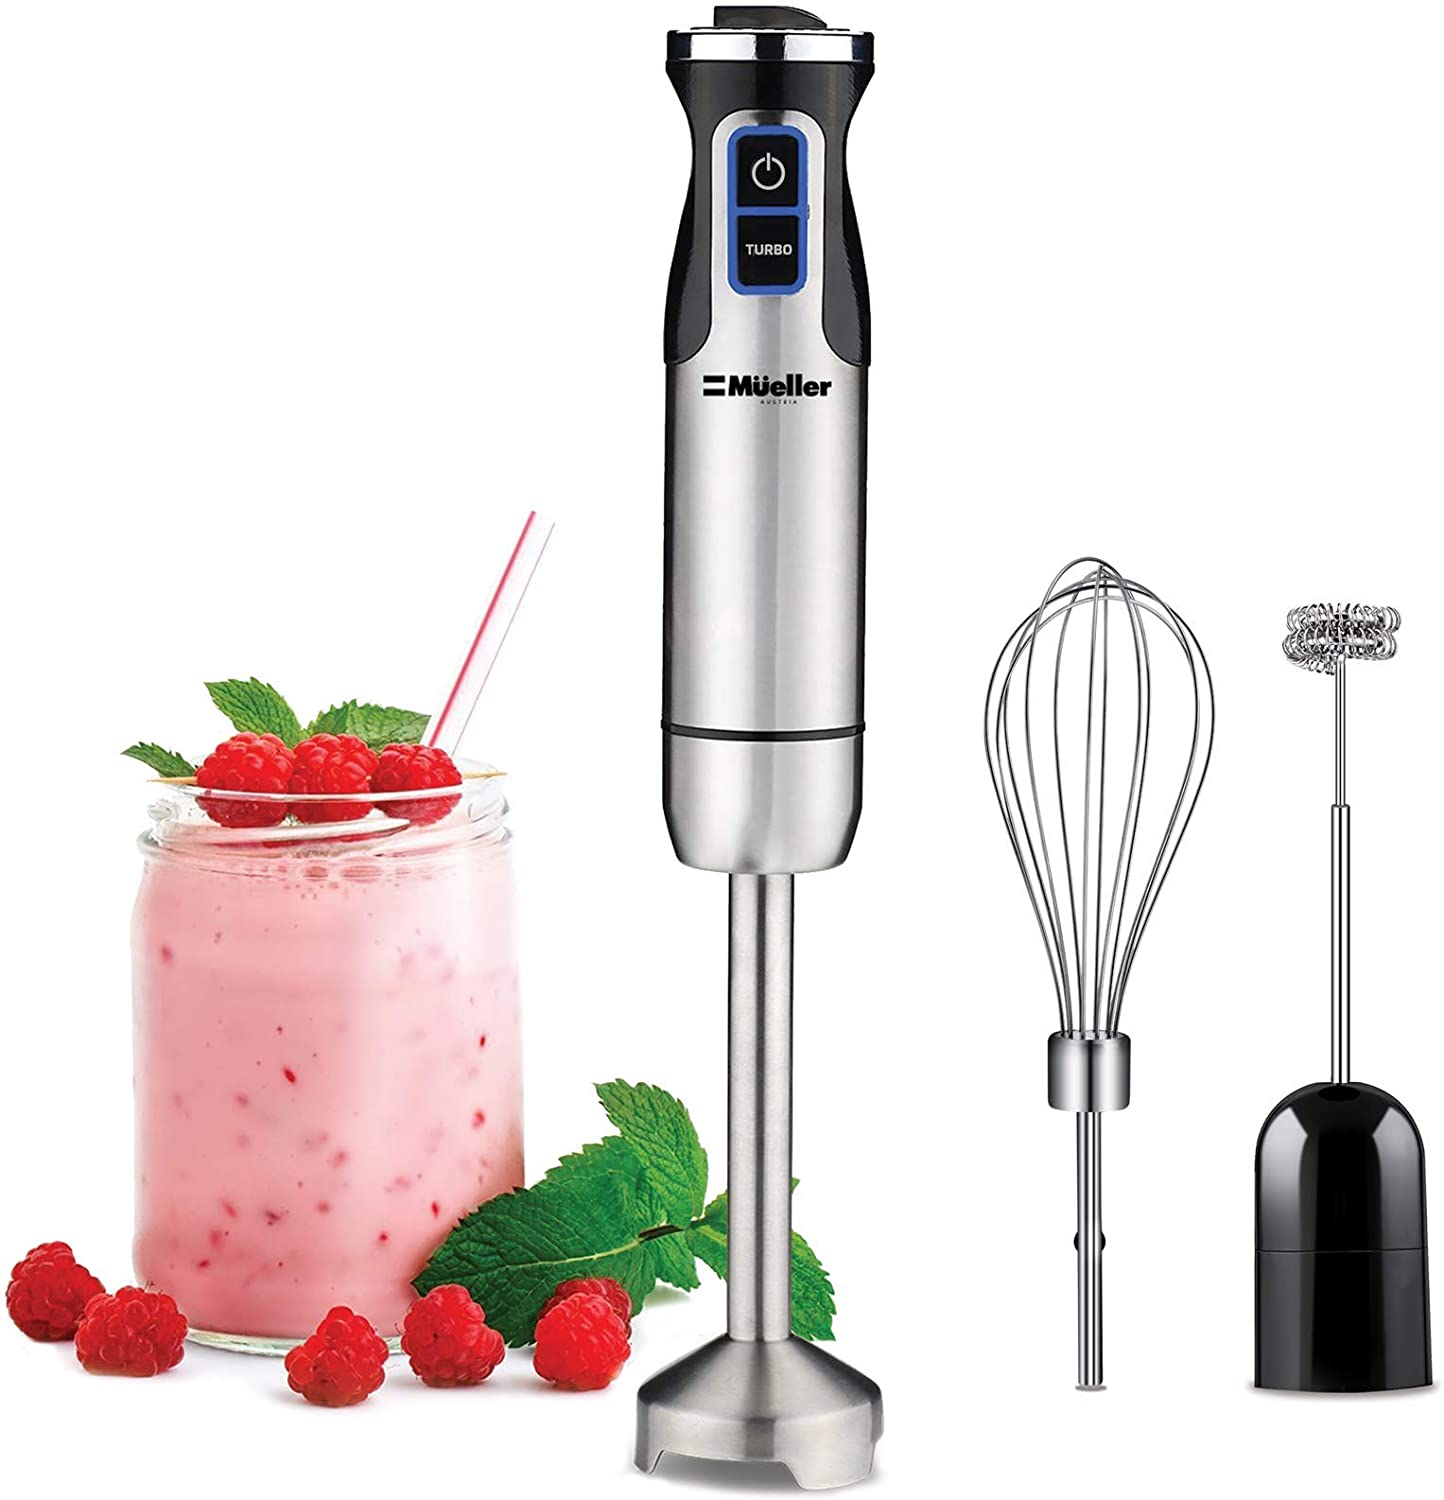 Mueller Austria Ultra-Stick 500 Watt 9-Speed Immersion Multi-Purpose Hand Blender Heavy Duty Copper Motor Brushed 304 Stainless Steel With Whisk, Milk Frother Attachments: Kitchen & Dining